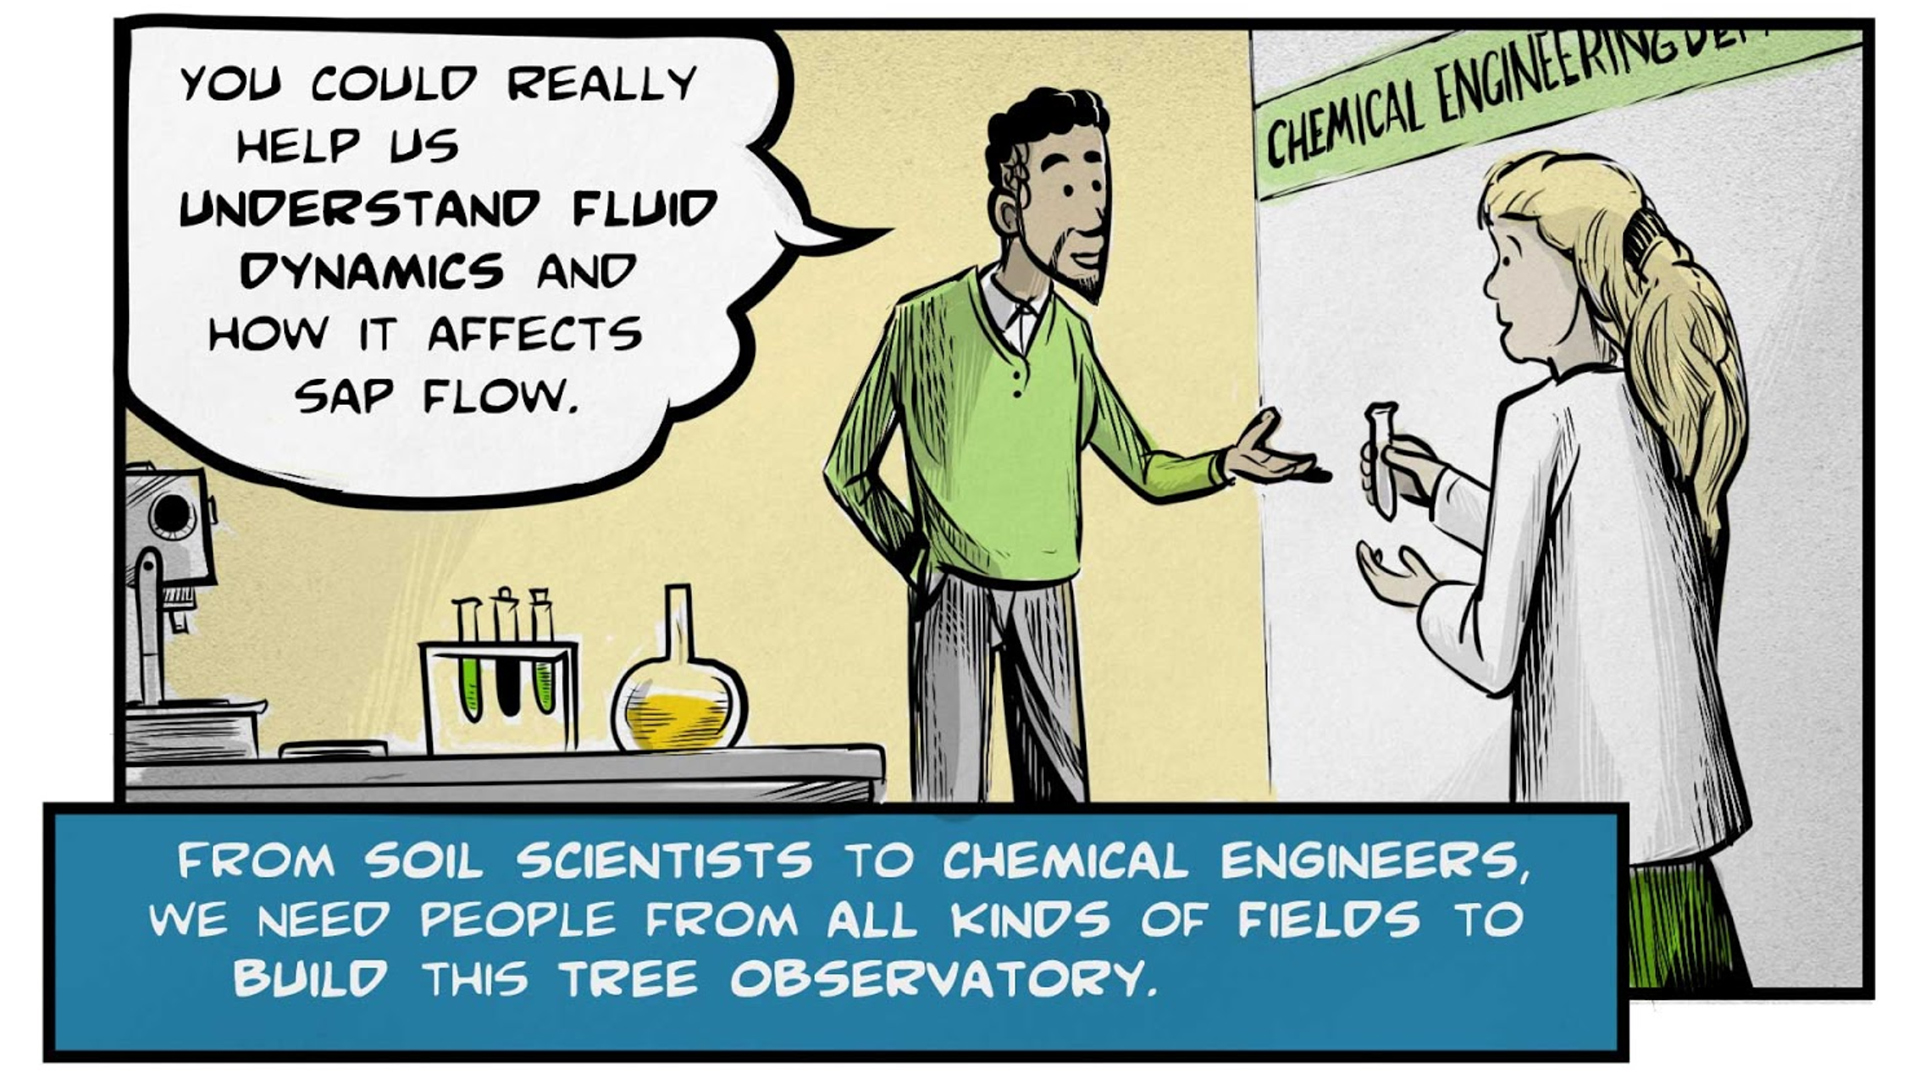 """Felix, the narrator, says, """"From soil scientists to chemical engineers, we need people from all kinds of fields to building this tree observatory."""" He stands in a chemical engineering laboratory, talking to a female colleague in a white lab coat. He says, """"You could really help us understand fluid dynamics and how it affects sap flow."""" Nearby, a flask, test tubes, and a microscope sit on a lab bench."""